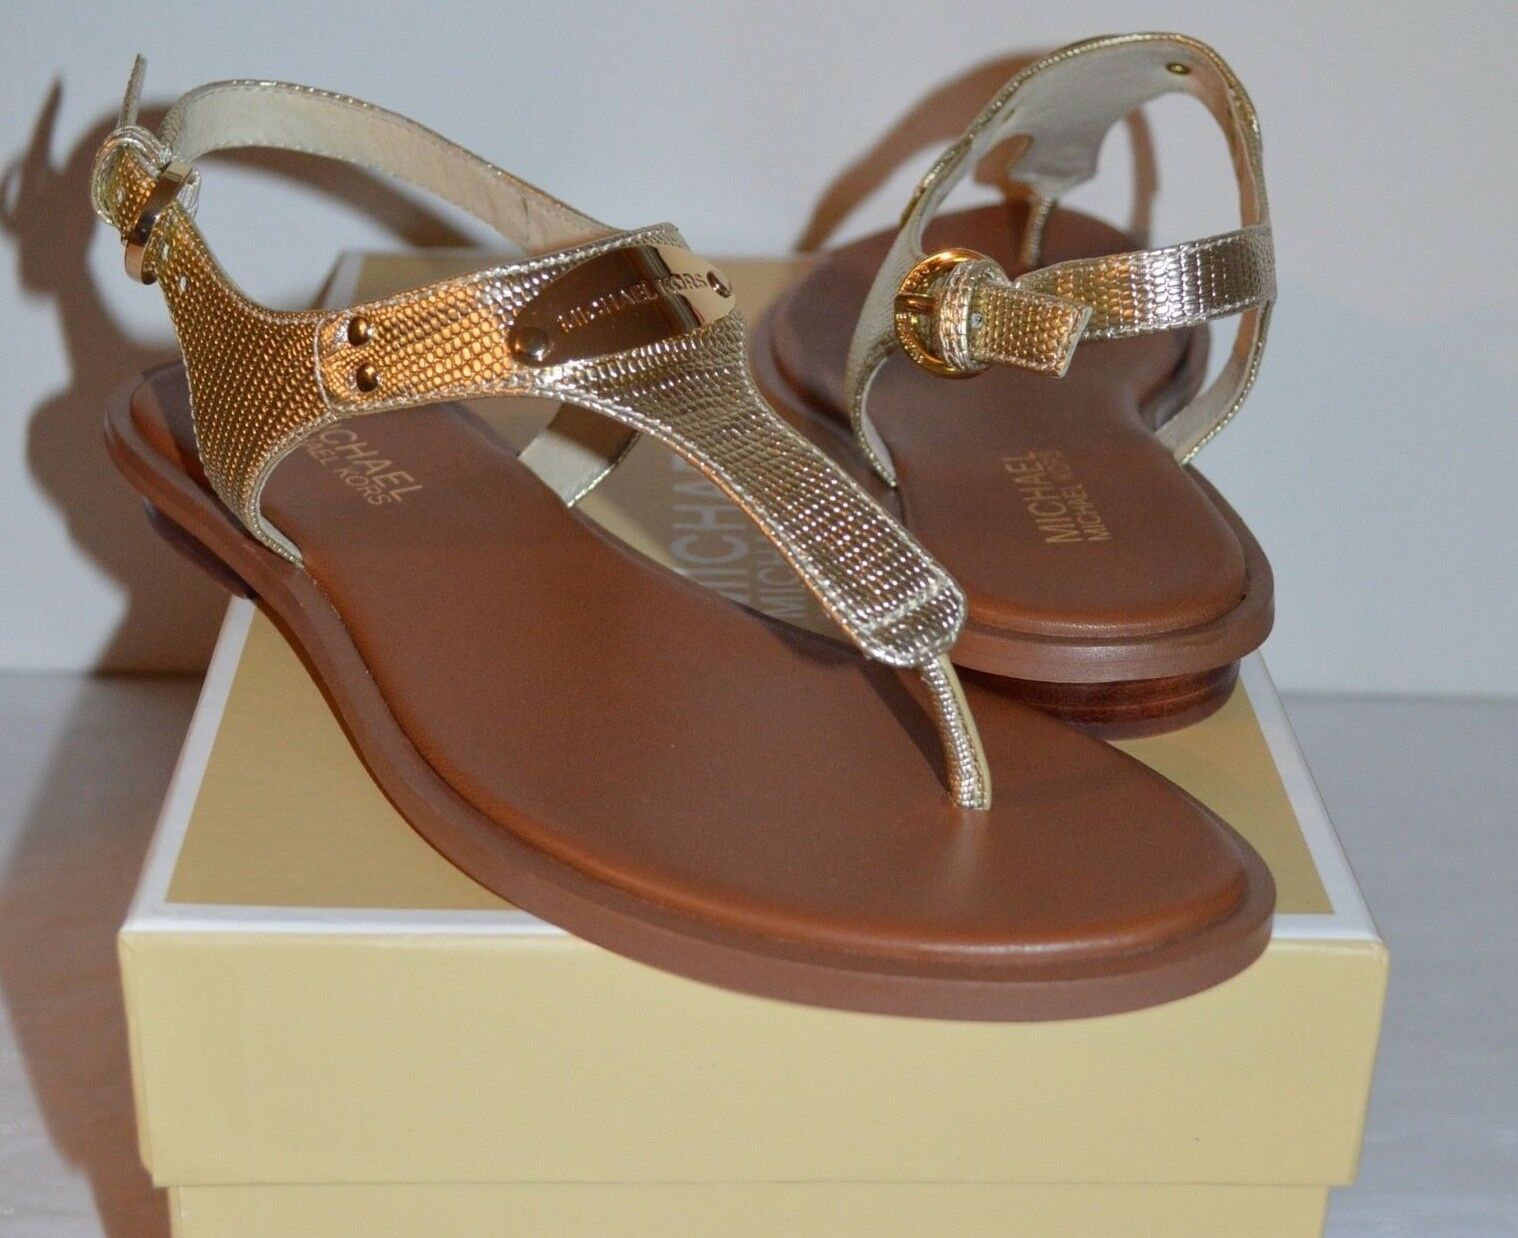 0e064de35c3 Michael Kors MK Plate Thong Leather Pale Gold Sandal Sz 6